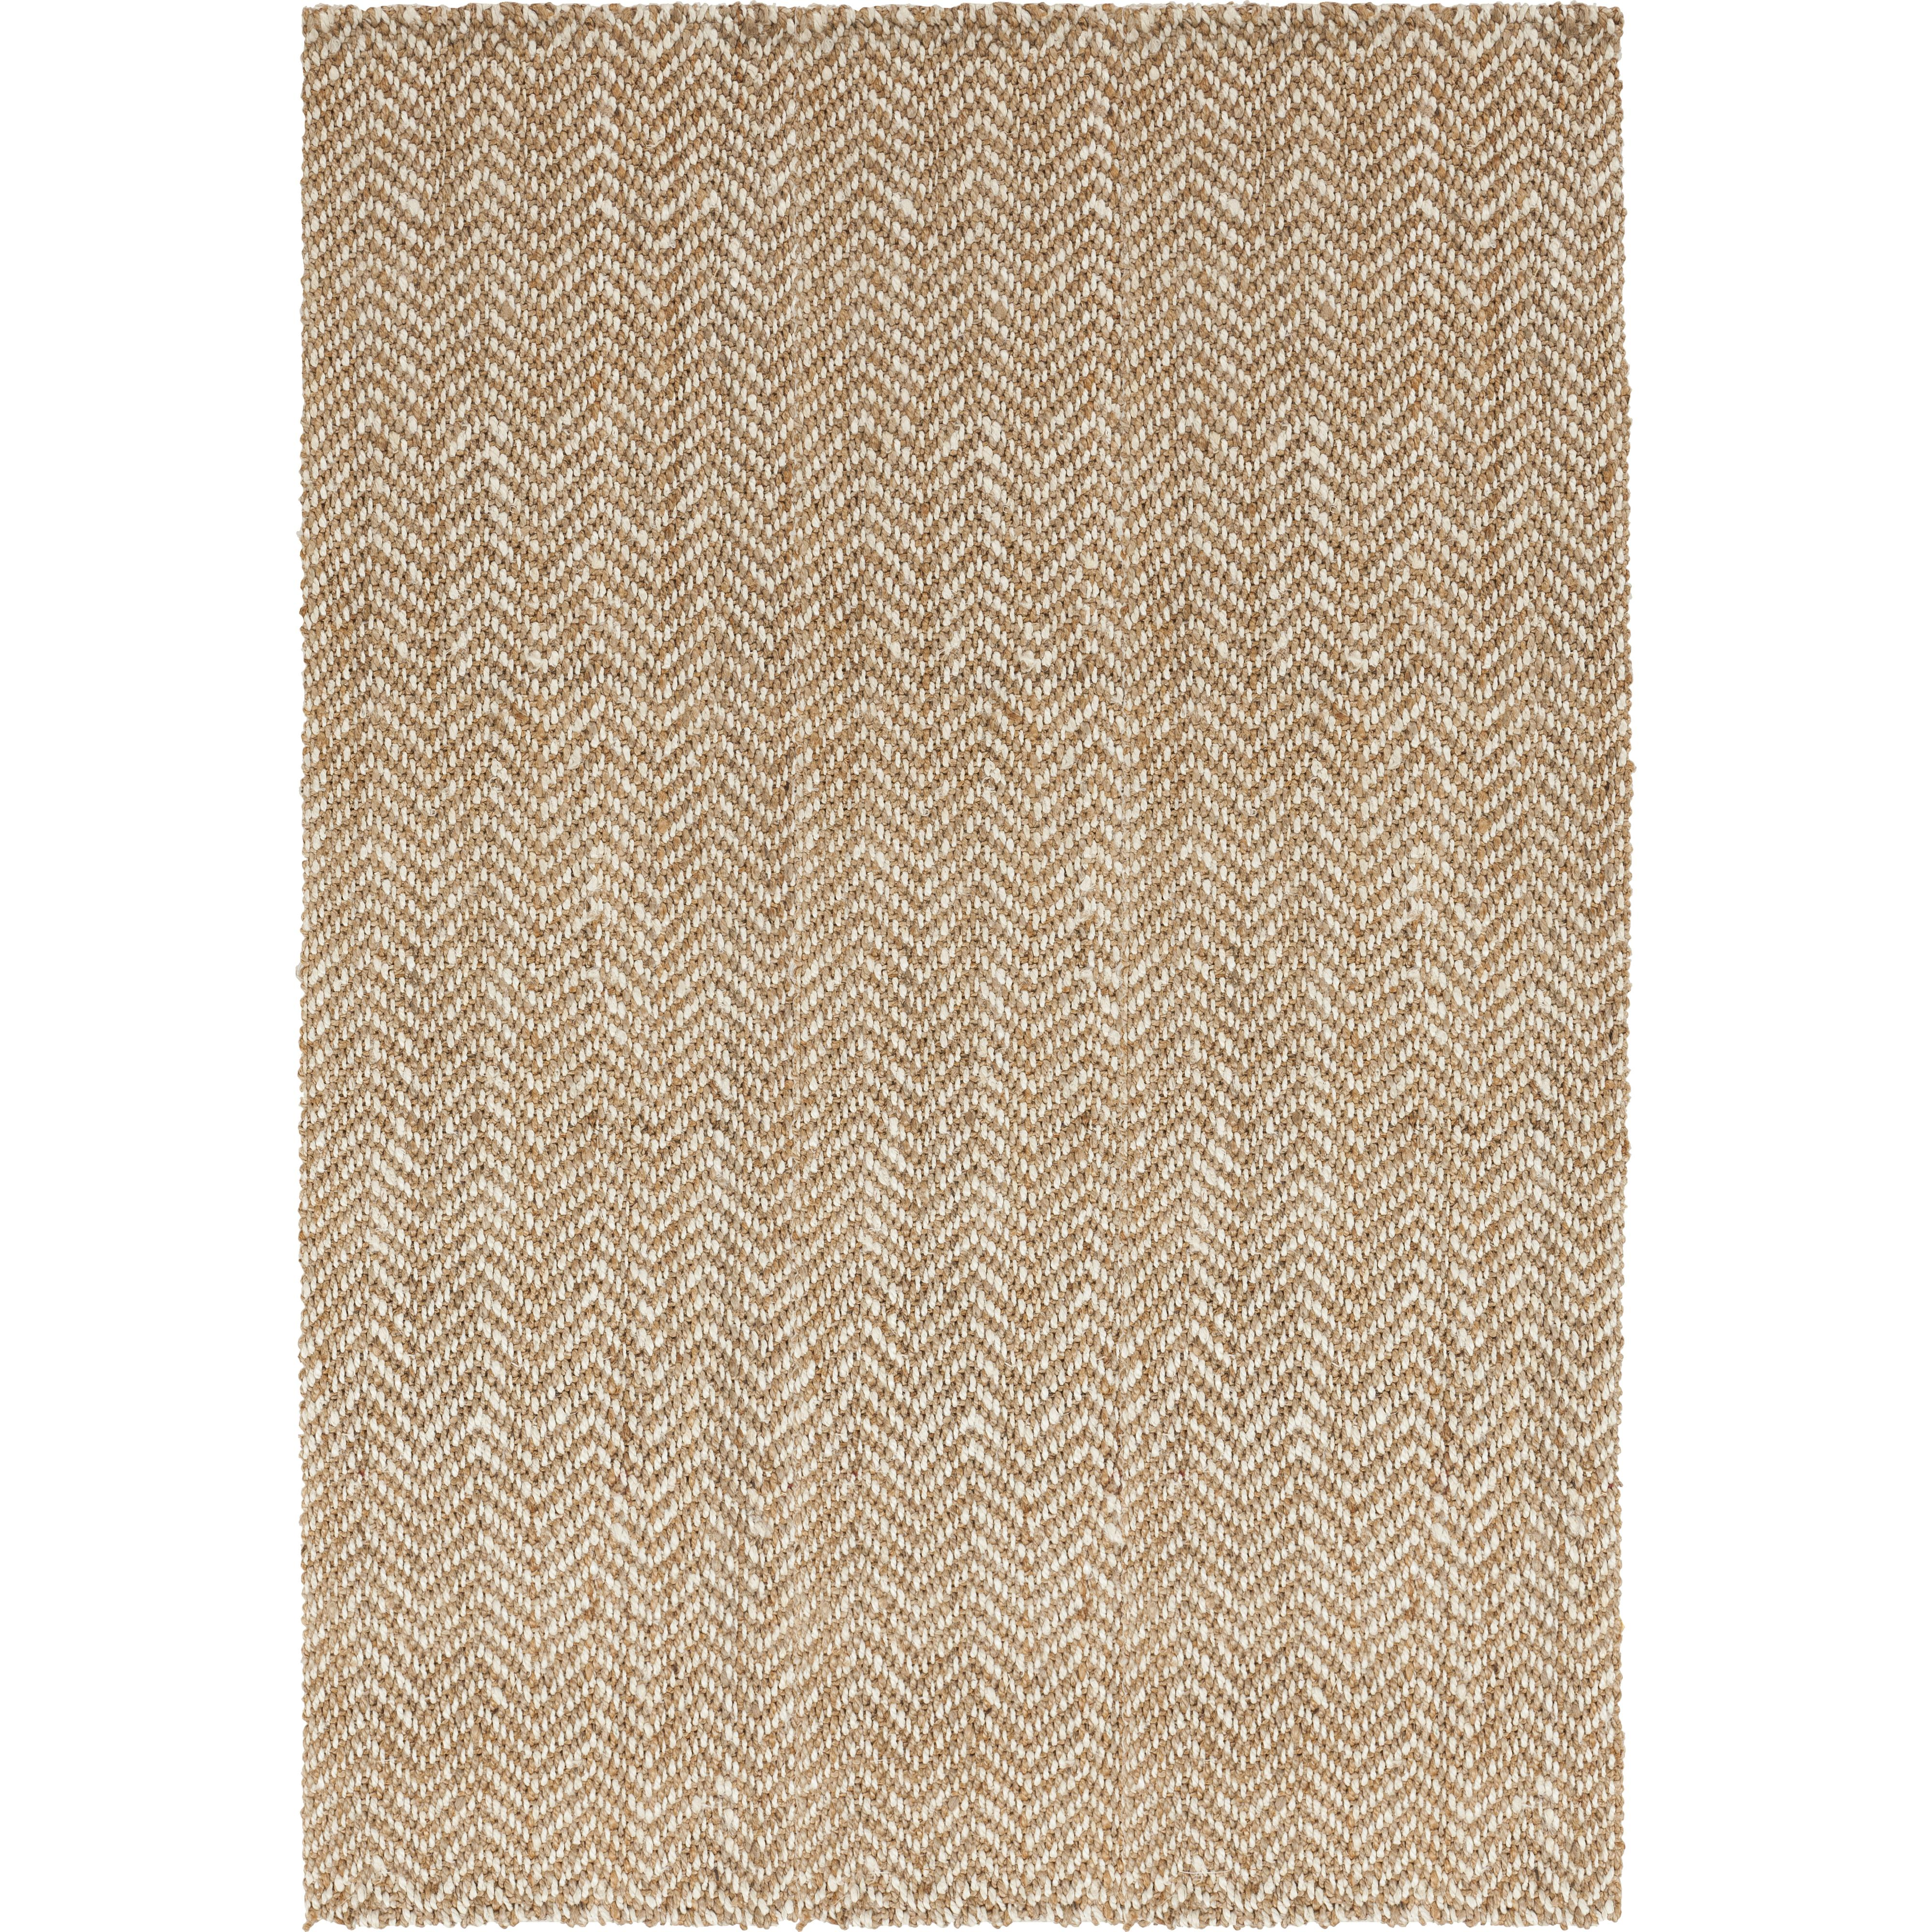 Reeds 10' x 14' by Ruby-Gordon Accents at Ruby Gordon Home